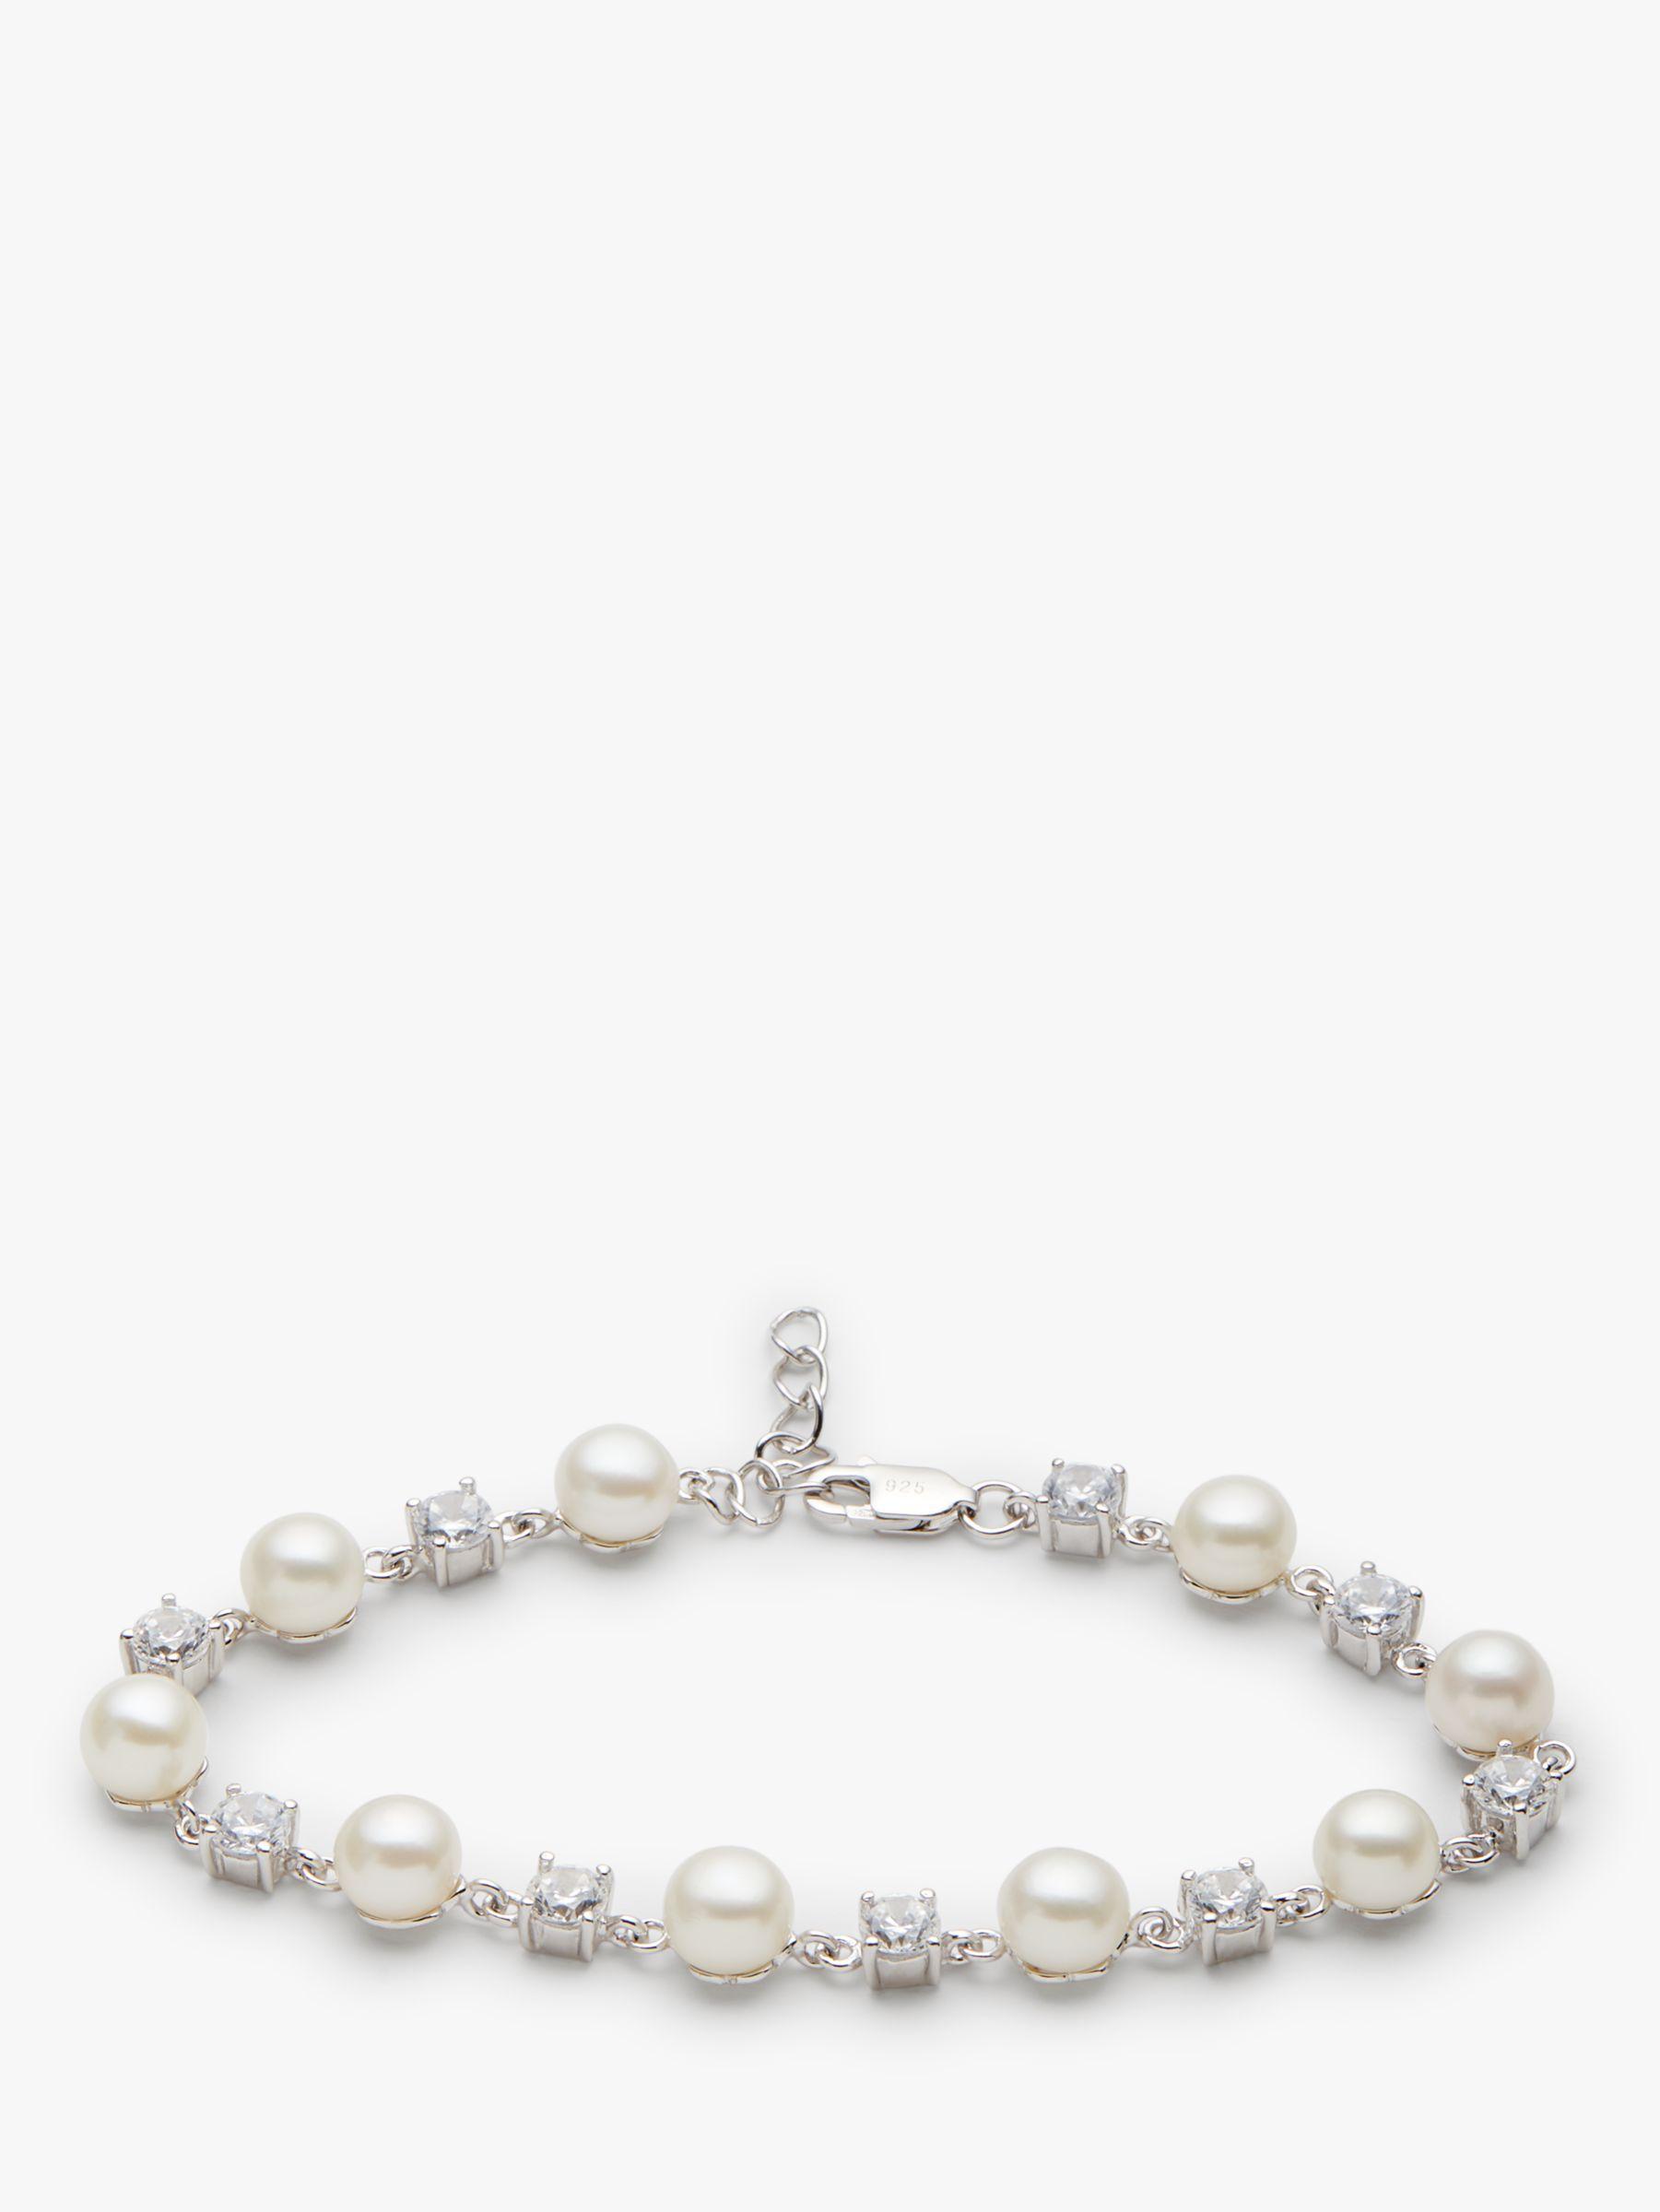 Lido Pearls Lido Pearls Pearl and Cubic Zirconia Spacer Bracelet, Silver/White